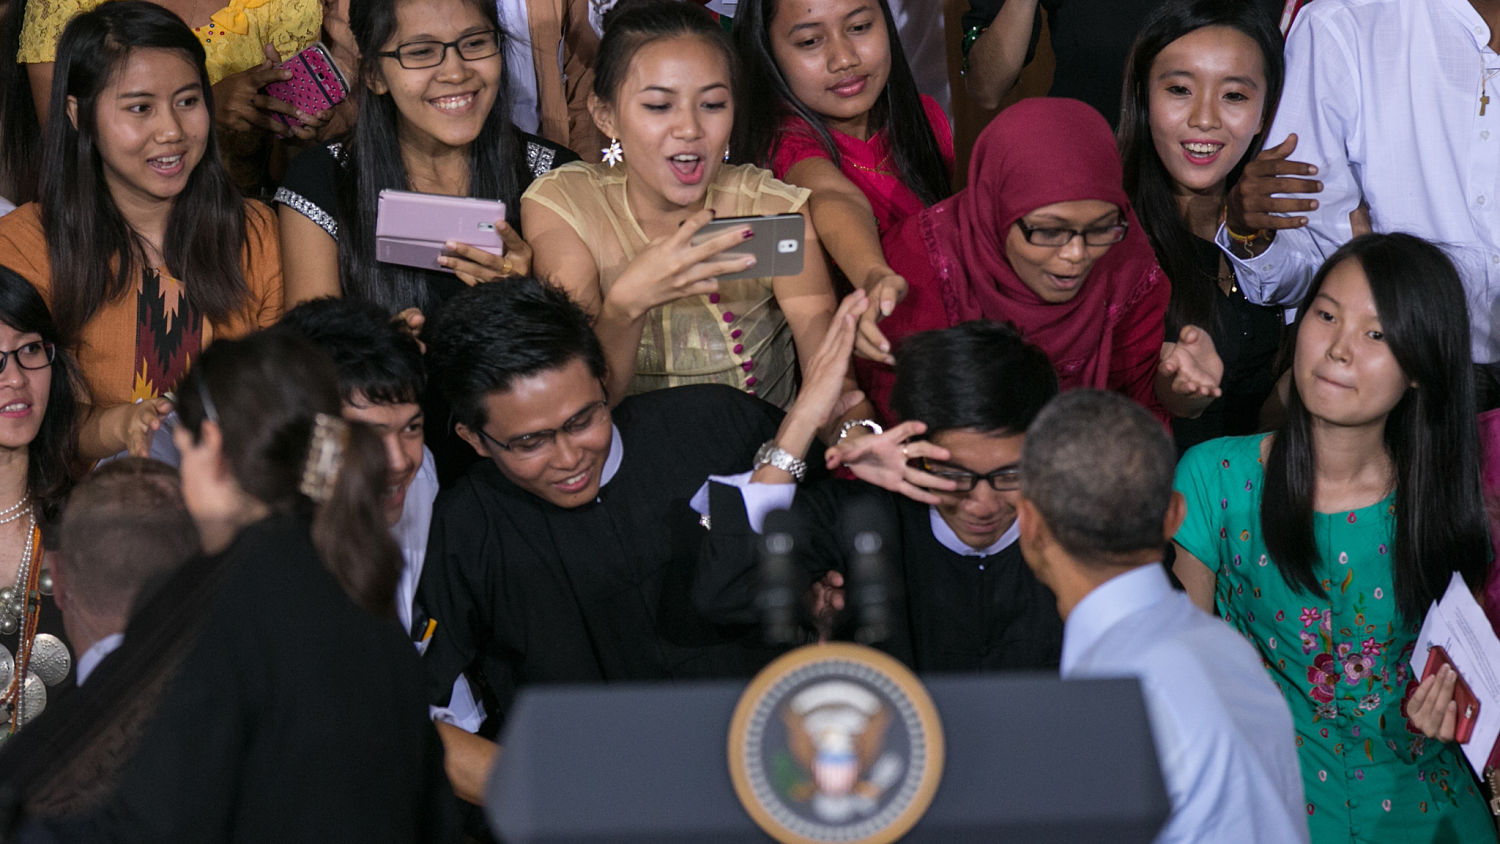 One woman lurched at Obama while photographing it at the same time.